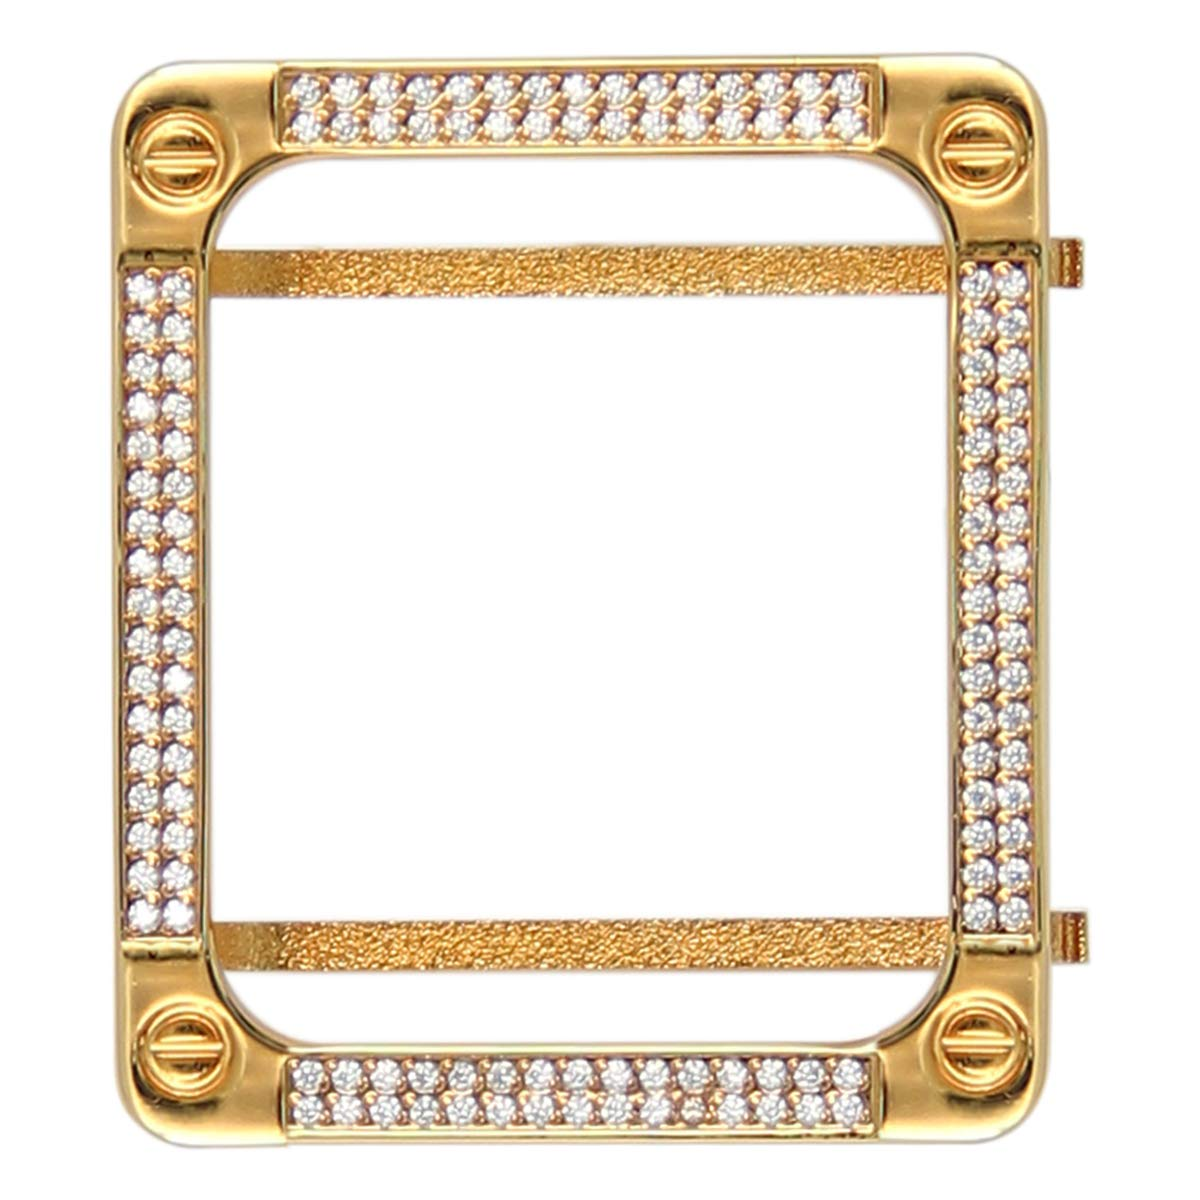 UKCOCO Compatible with Apple Watch 42MM Diamond Case, Square Diamond Two Row Metal Frame Case for iWatch(Gold) by UKCOCO